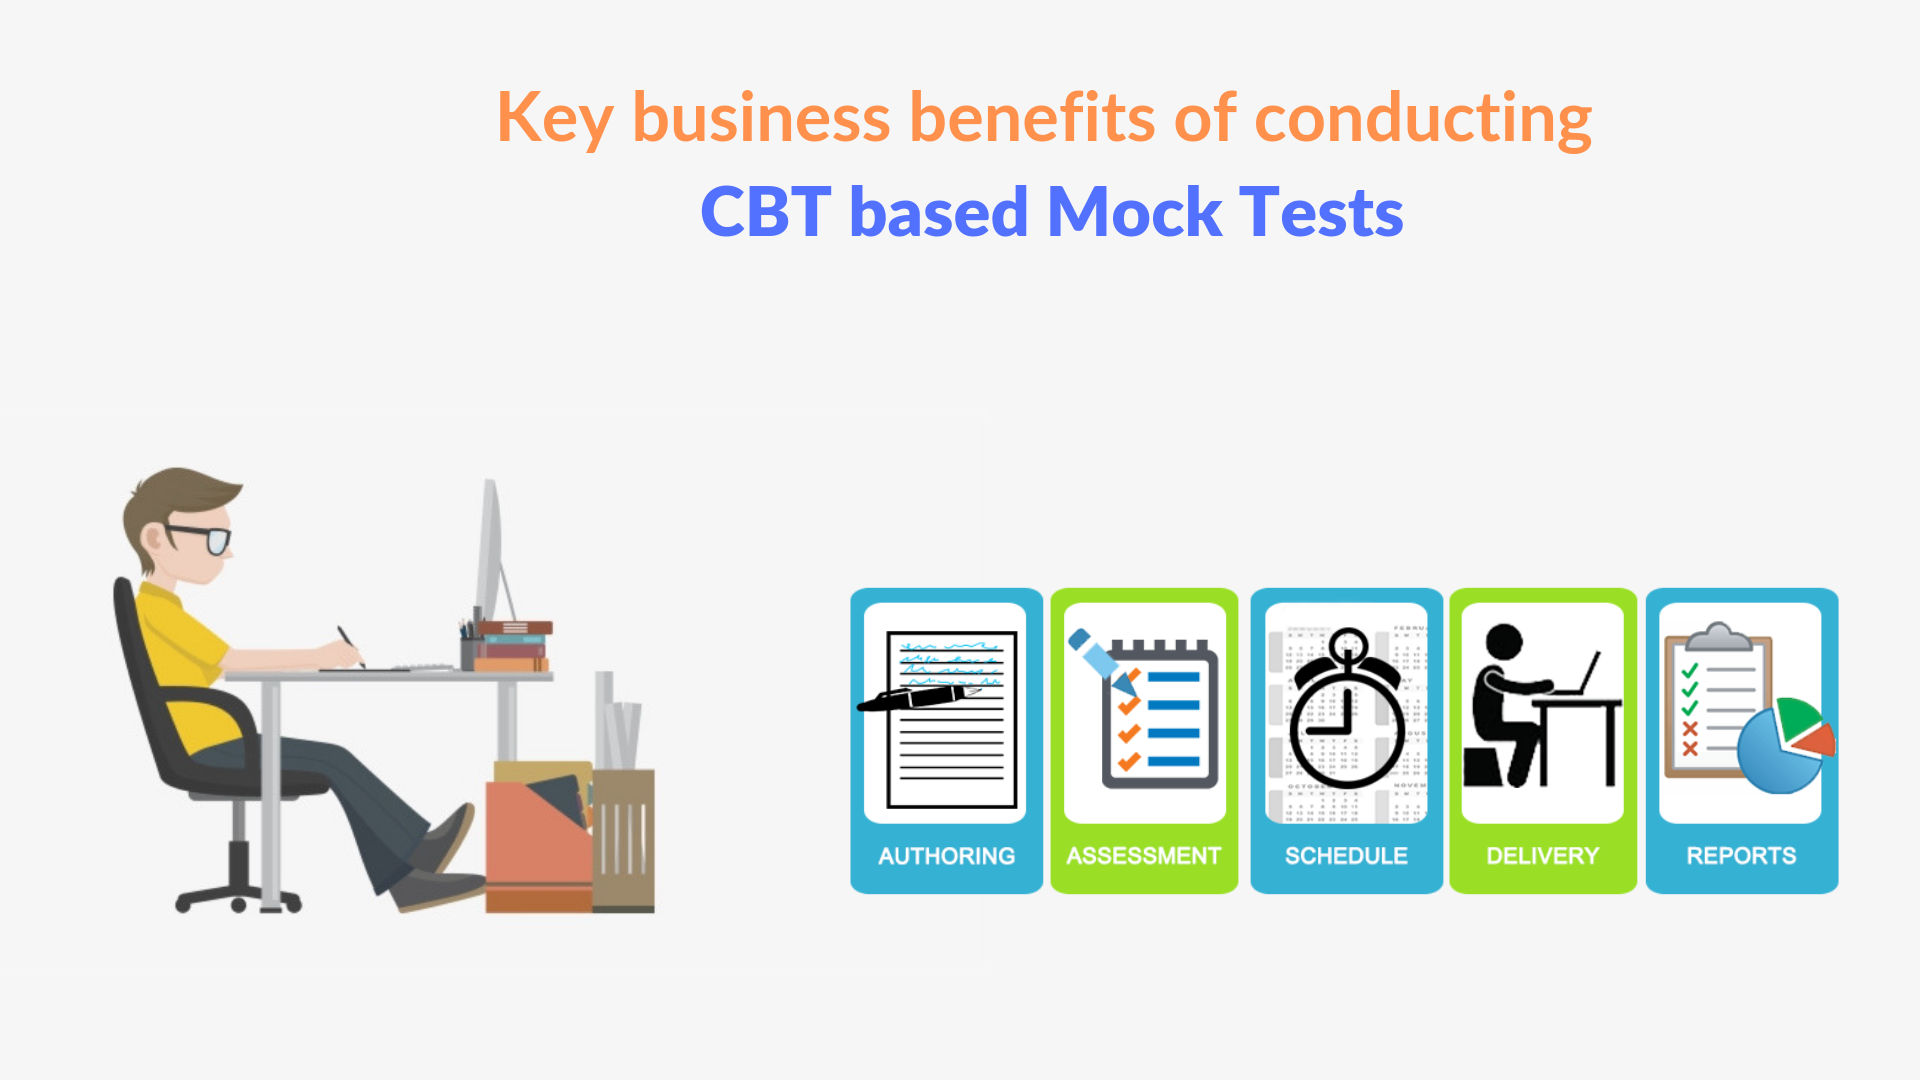 Key business benefits of conducting CBT based Mock Tests